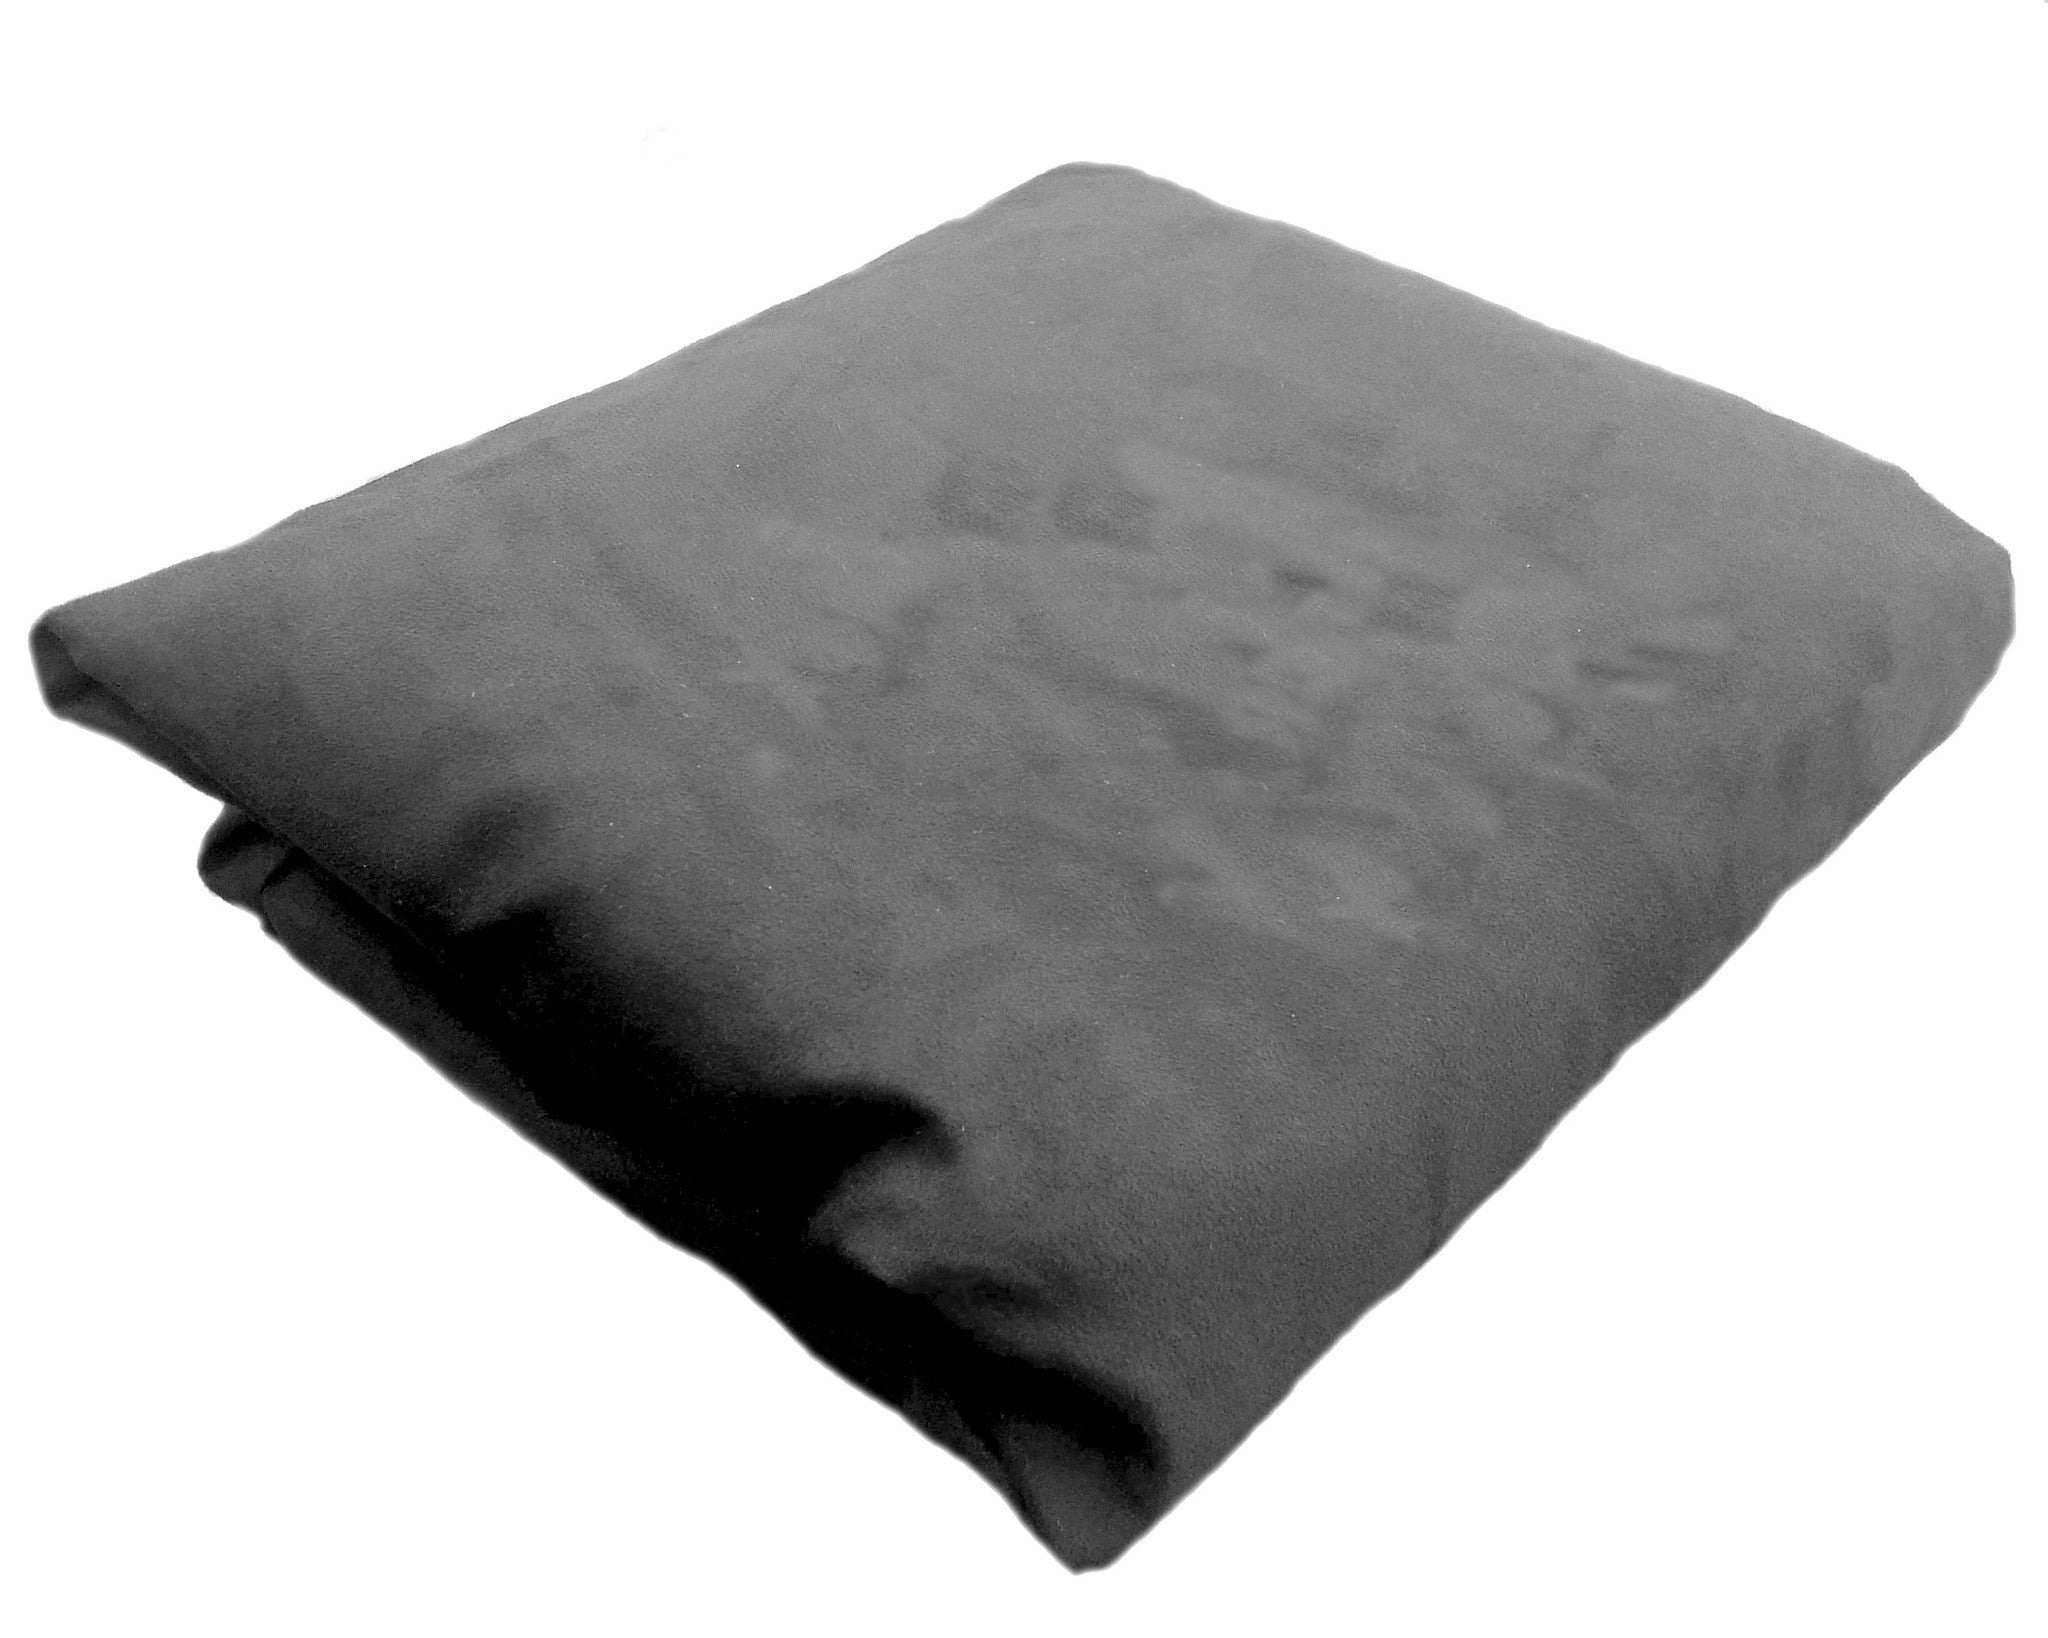 Cozy Sack New Cover For 7 Foot Cozy Bean Bag Chair Cozy